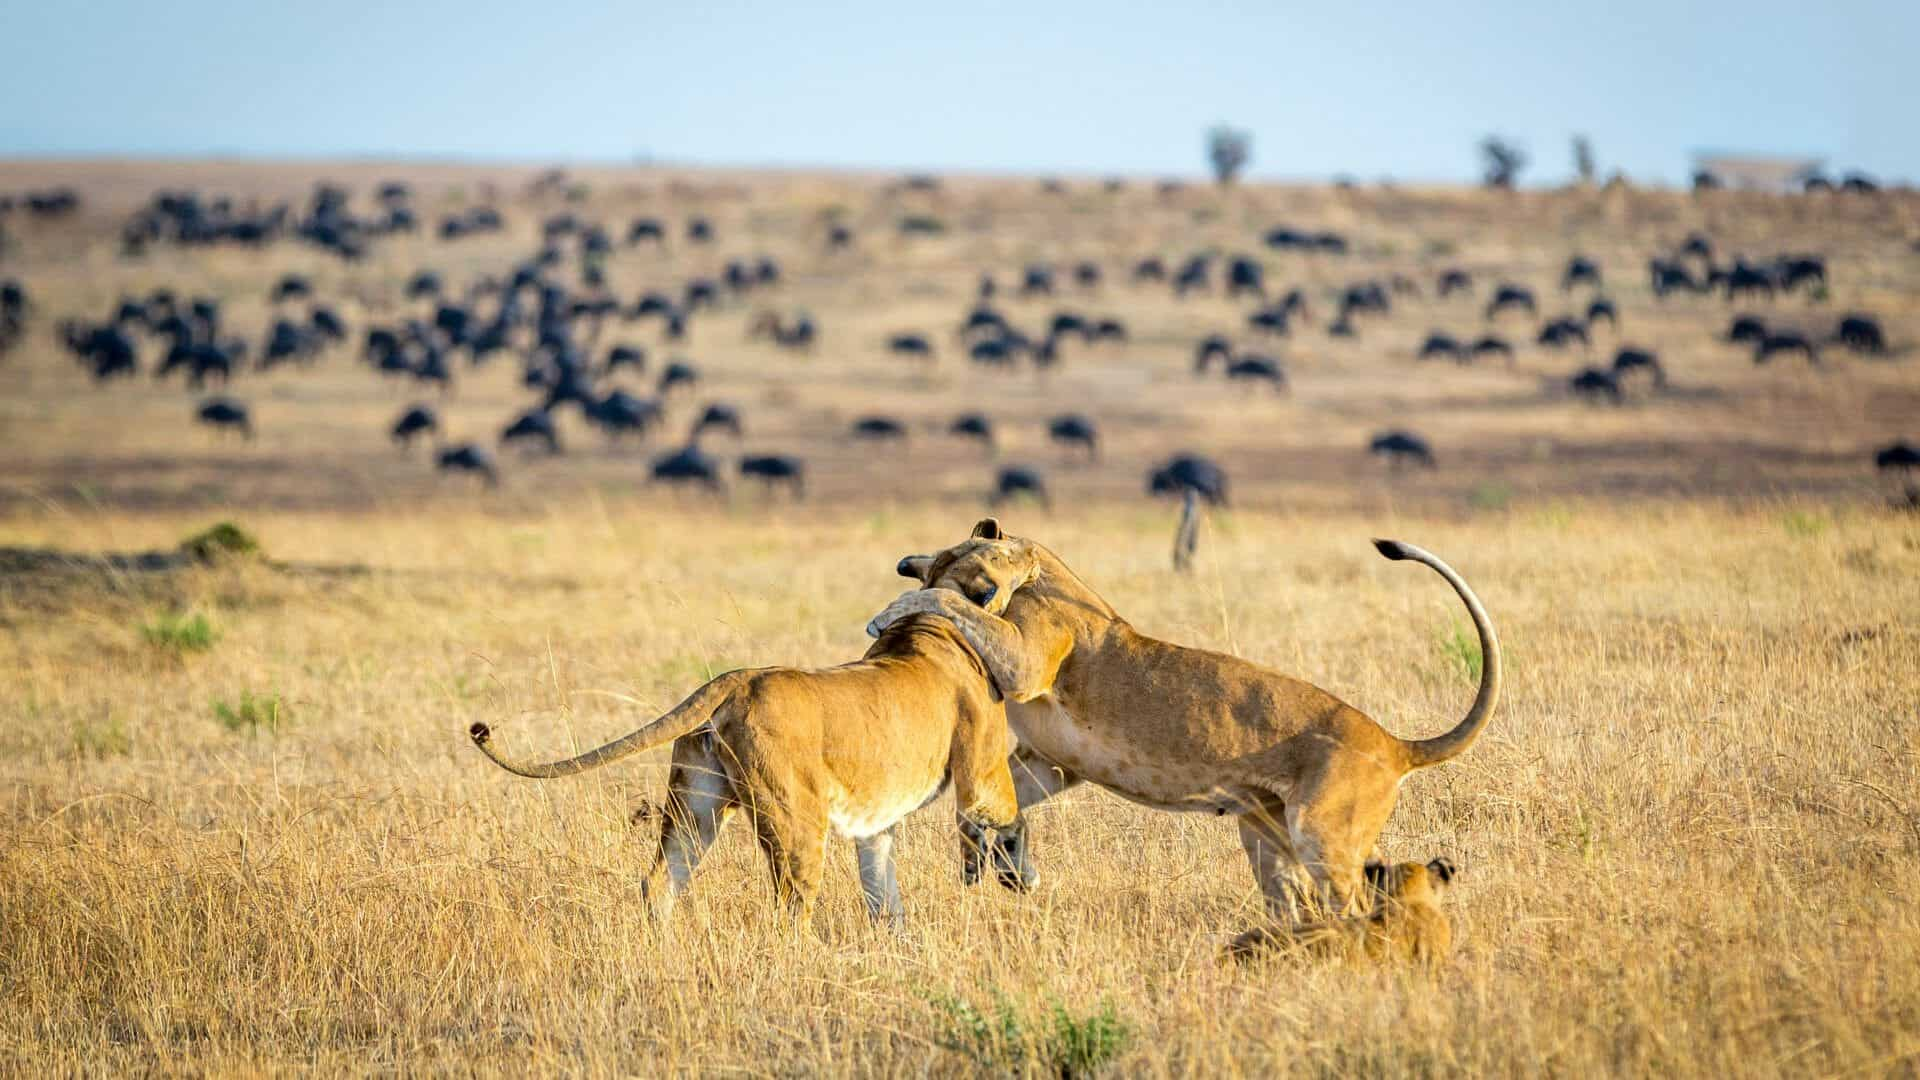 Lioness Playing With Cubs Serengeti National Park Tanzania 1920x1080